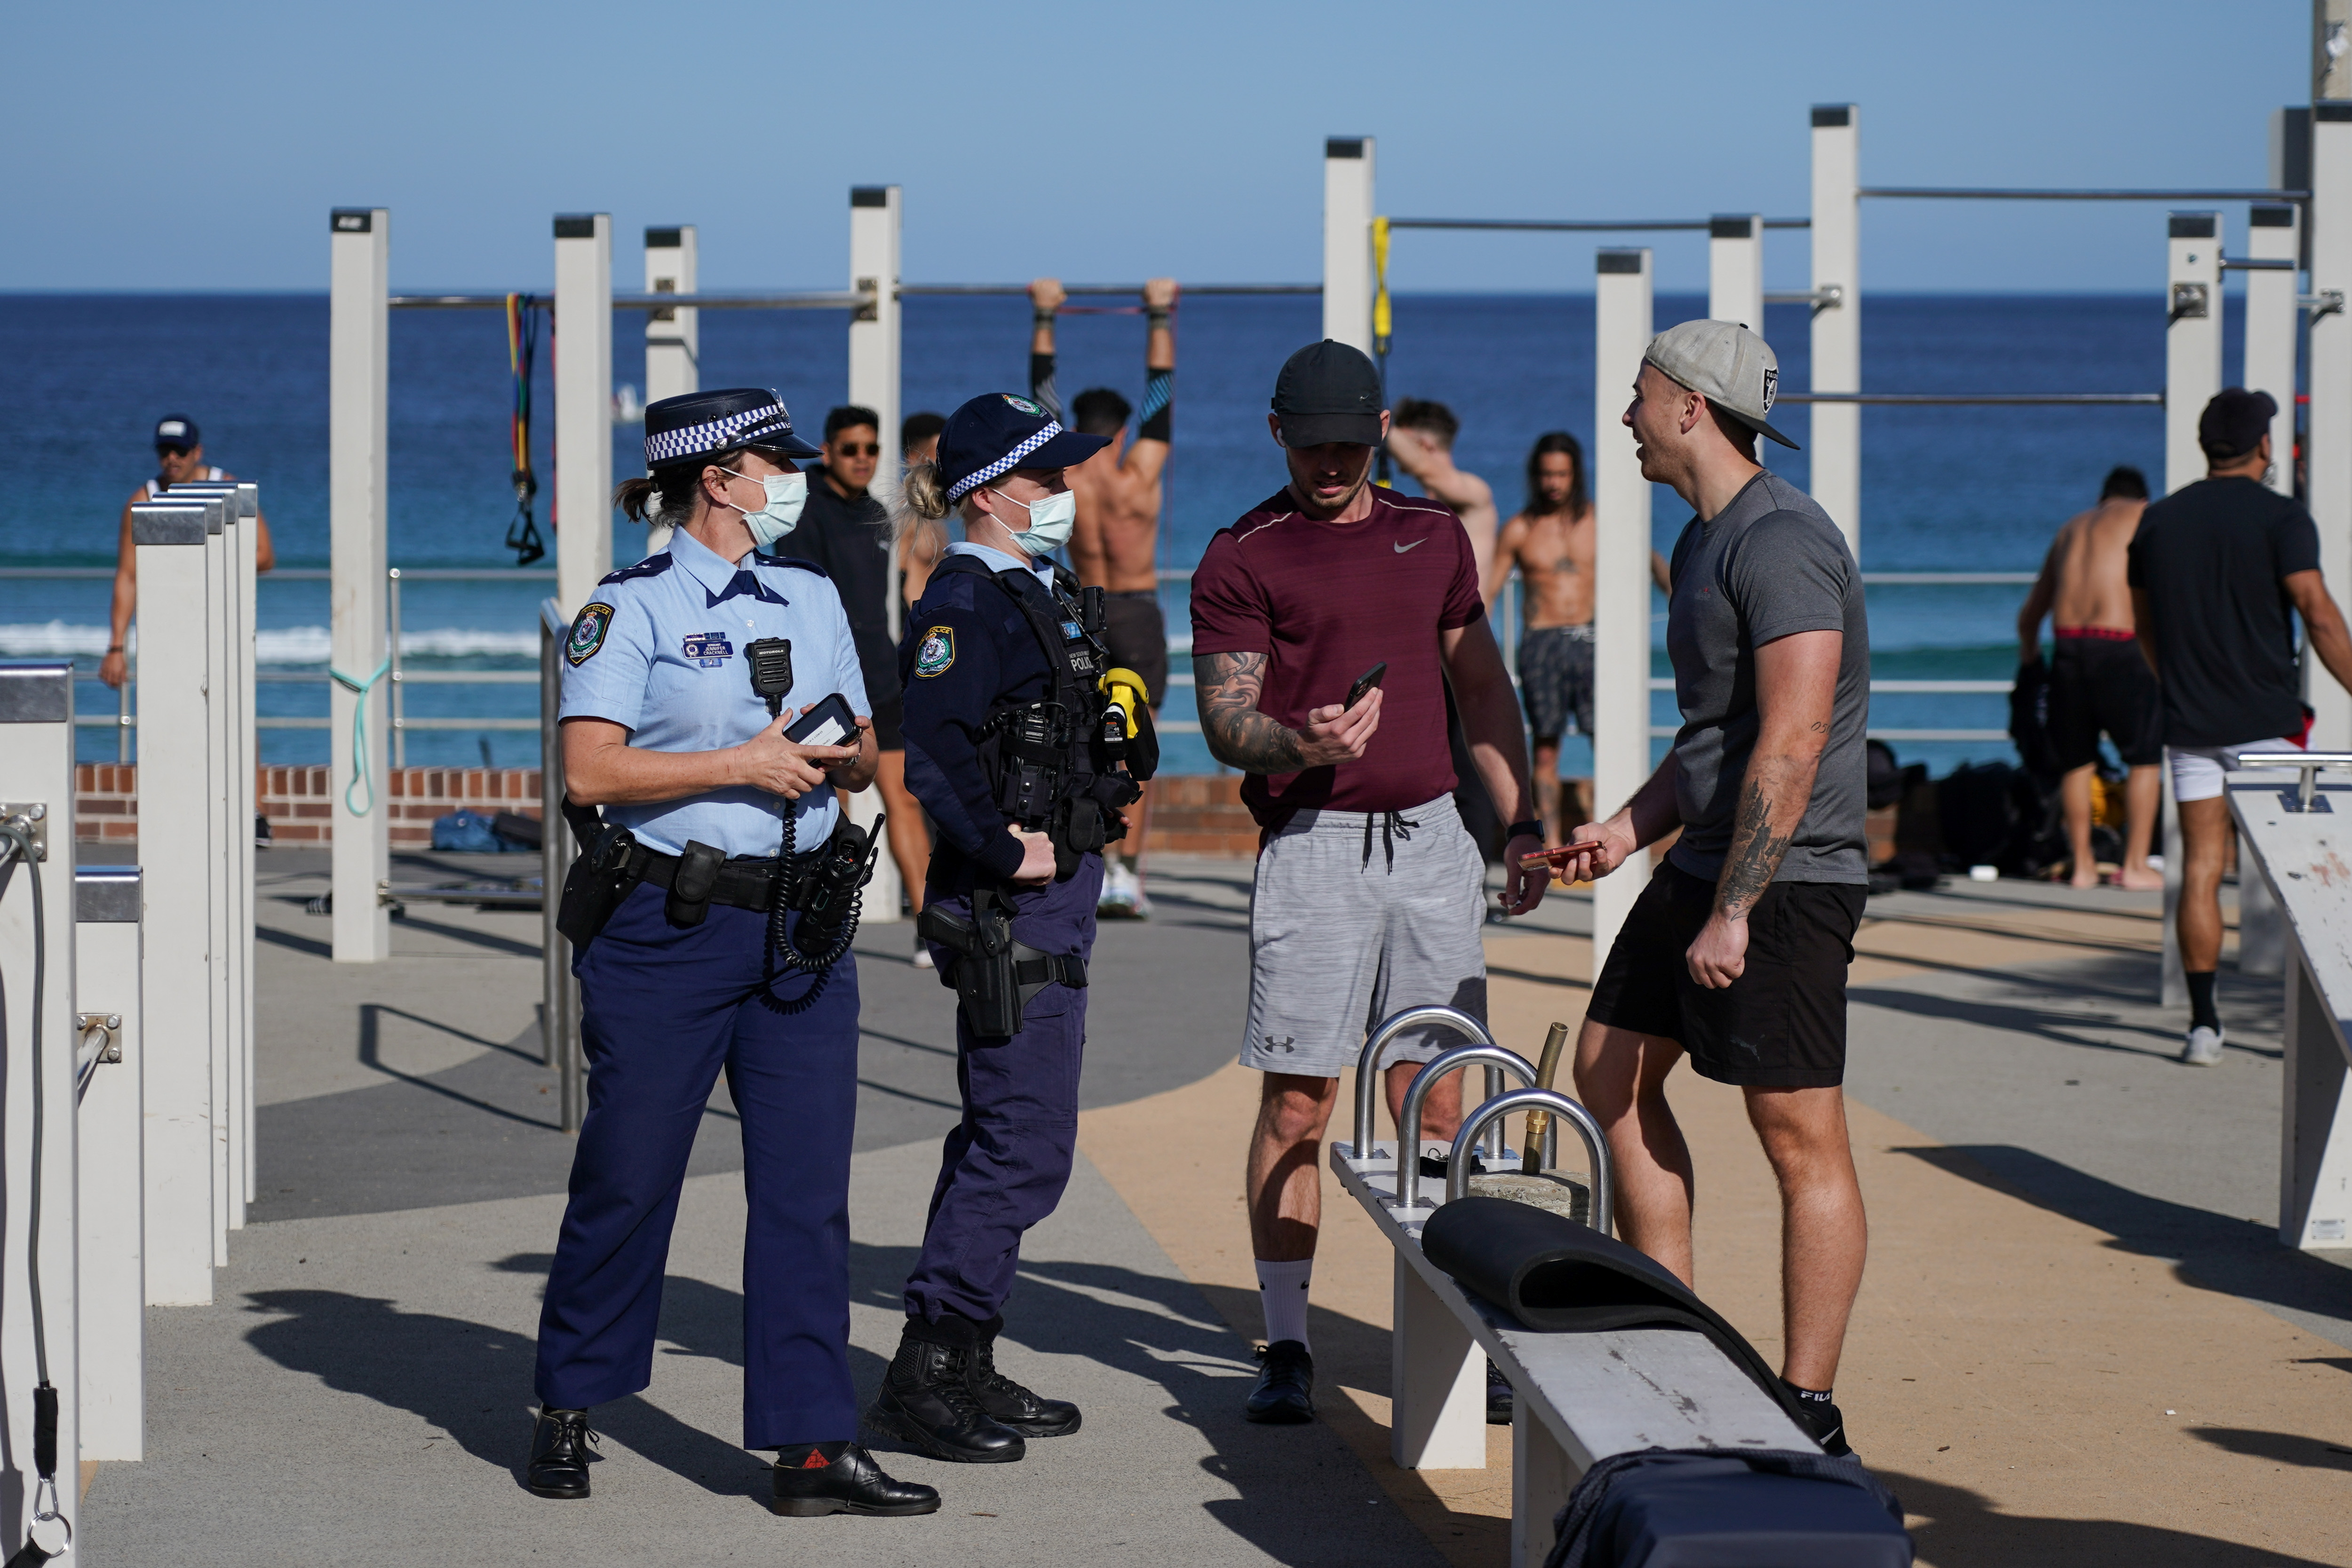 Patrolling police officers check ID information of people working out at a Bondi Beach outdoor gym area during a lockdown to curb the spread of a coronavirus disease (COVID-19) outbreak in Sydney, Australia, July 27, 2021.  REUTERS/Loren Elliott